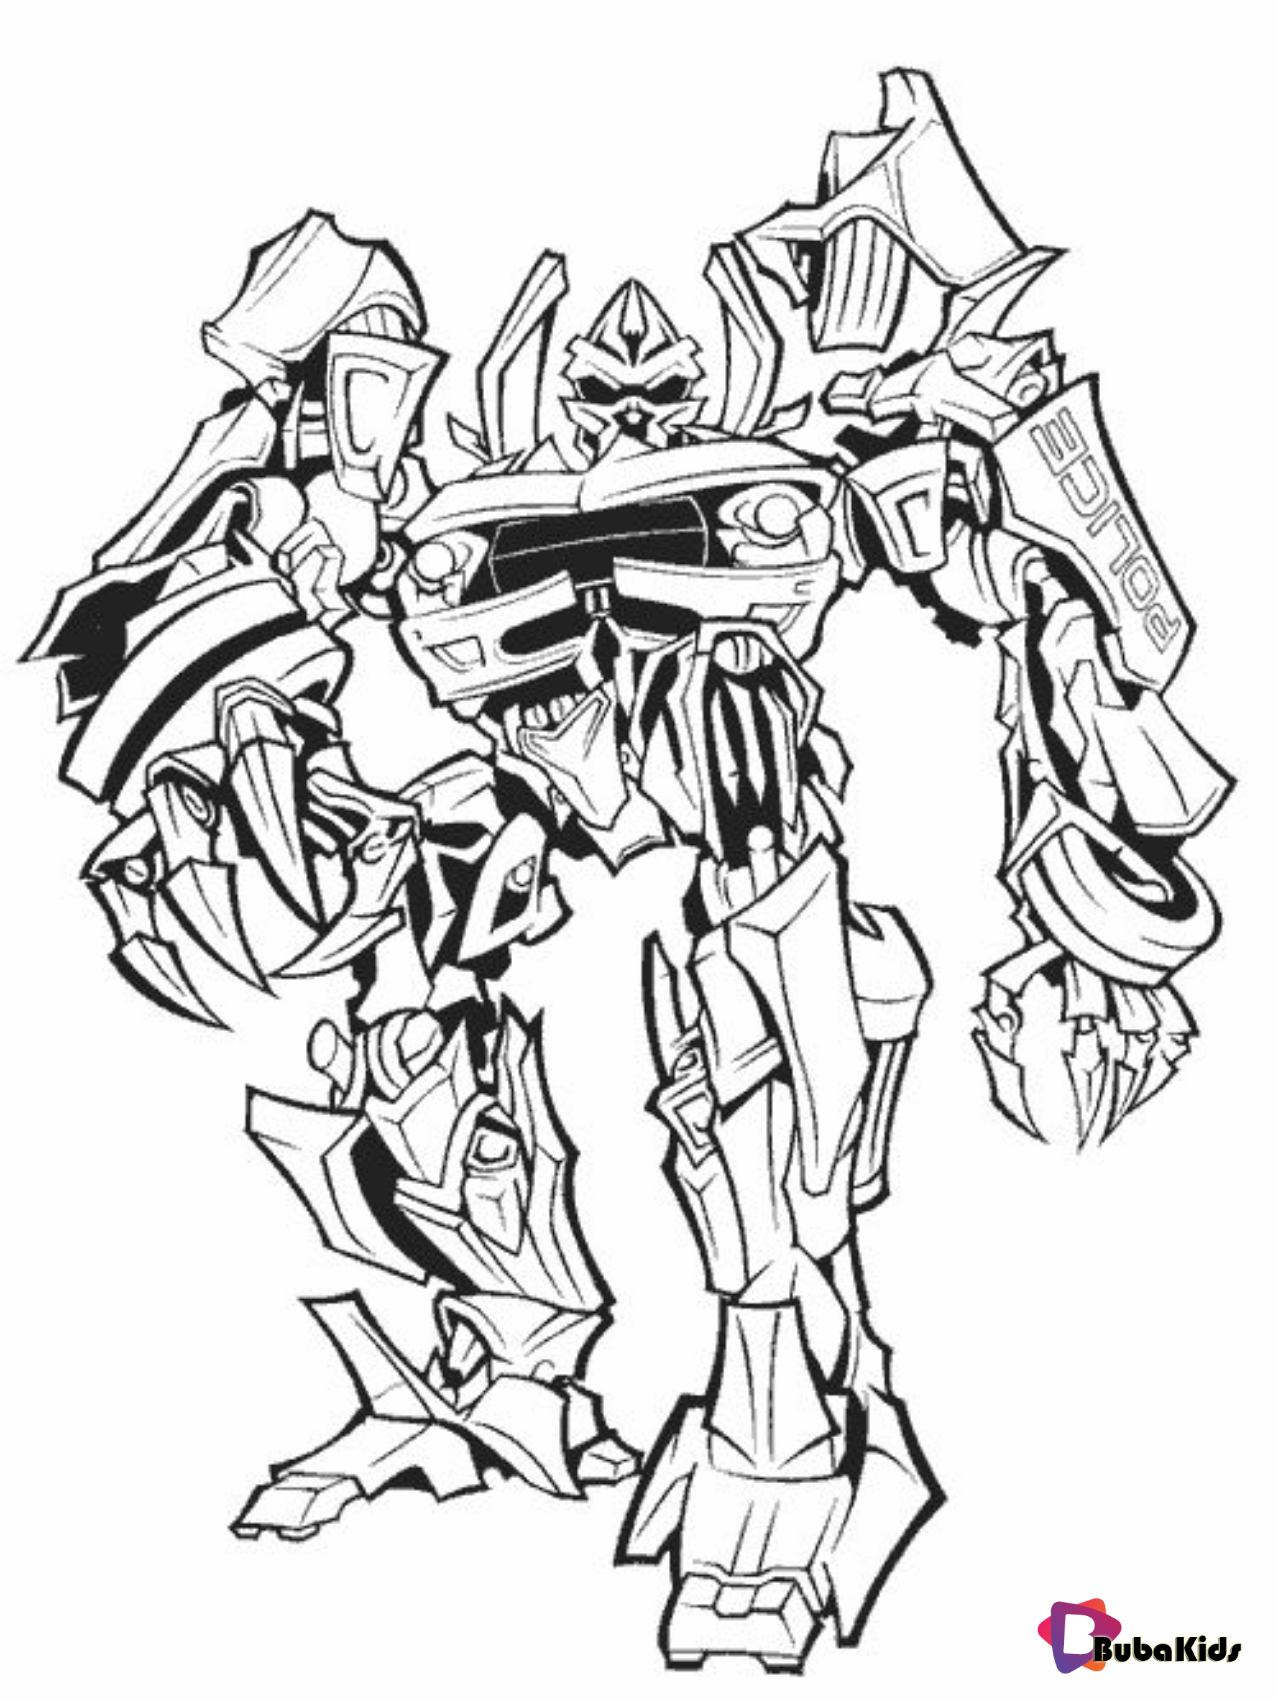 Transformer Coloring Pages And Printable On Bubakids Com Coloring Sheet Transformer Colori Transformers Coloring Pages Coloring Pages Cartoon Coloring Pages